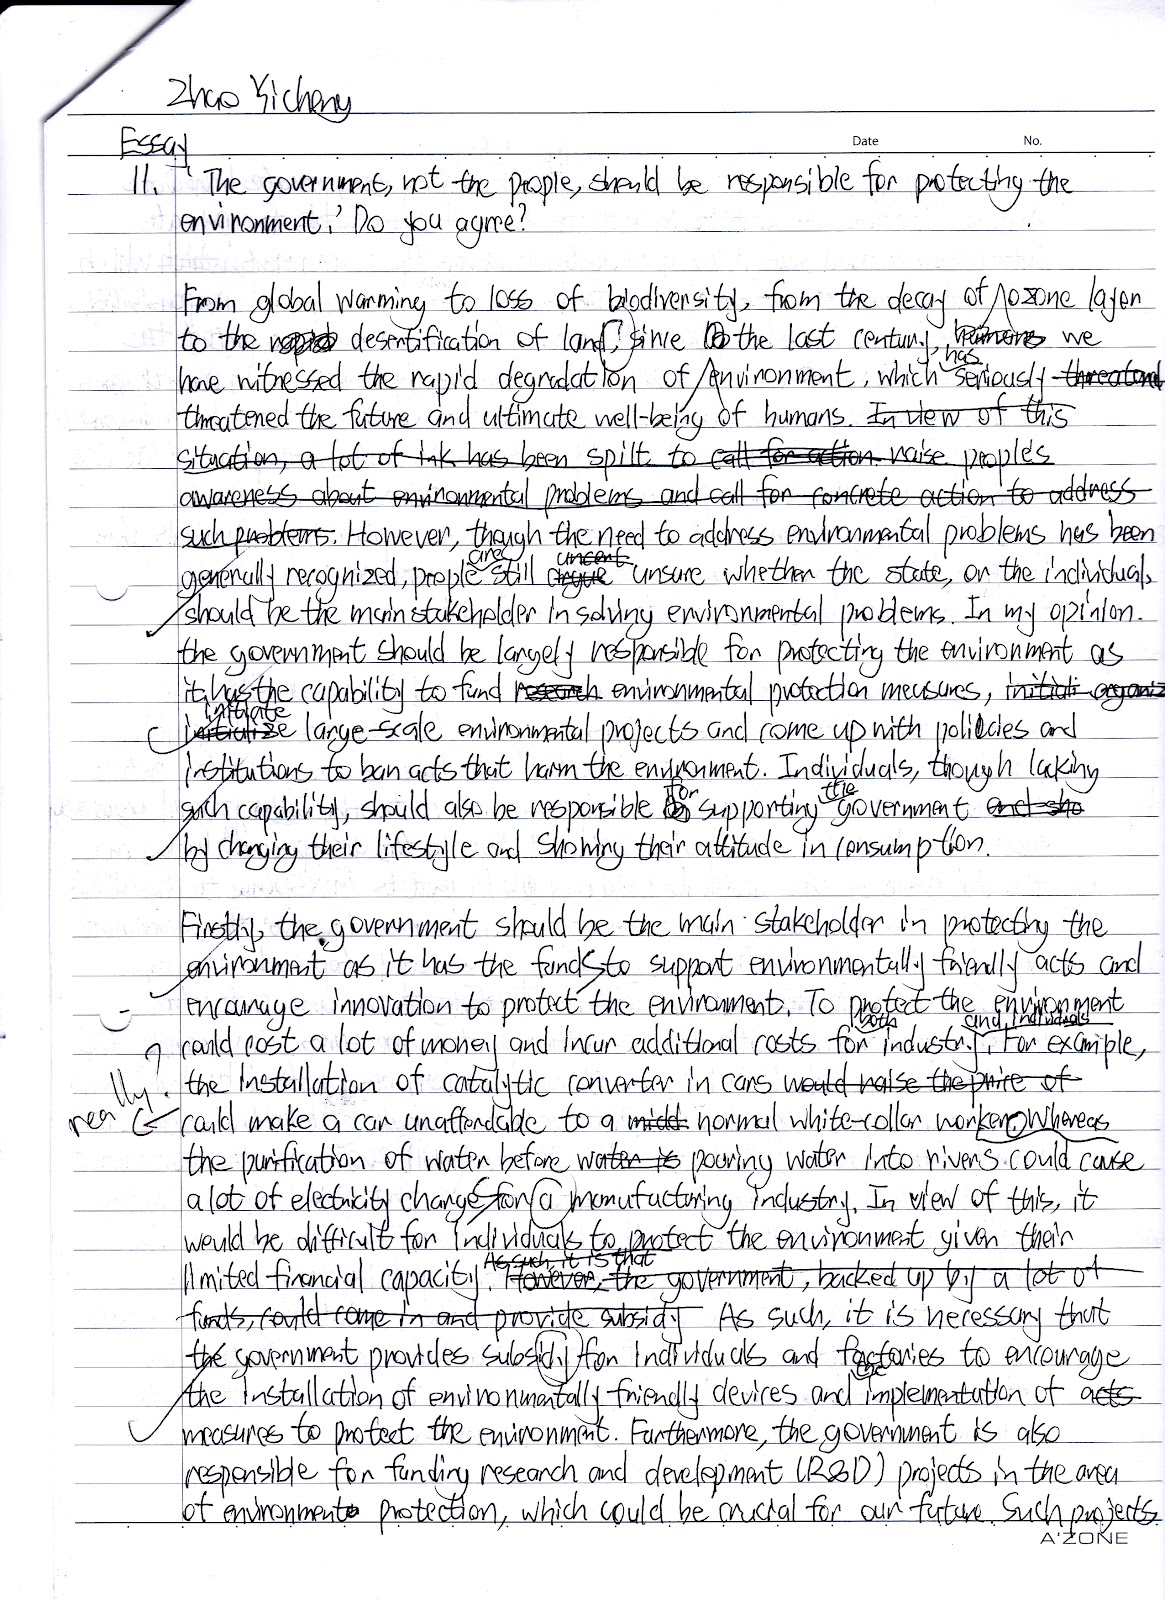 an essay on environment environmental law essay ks science ...